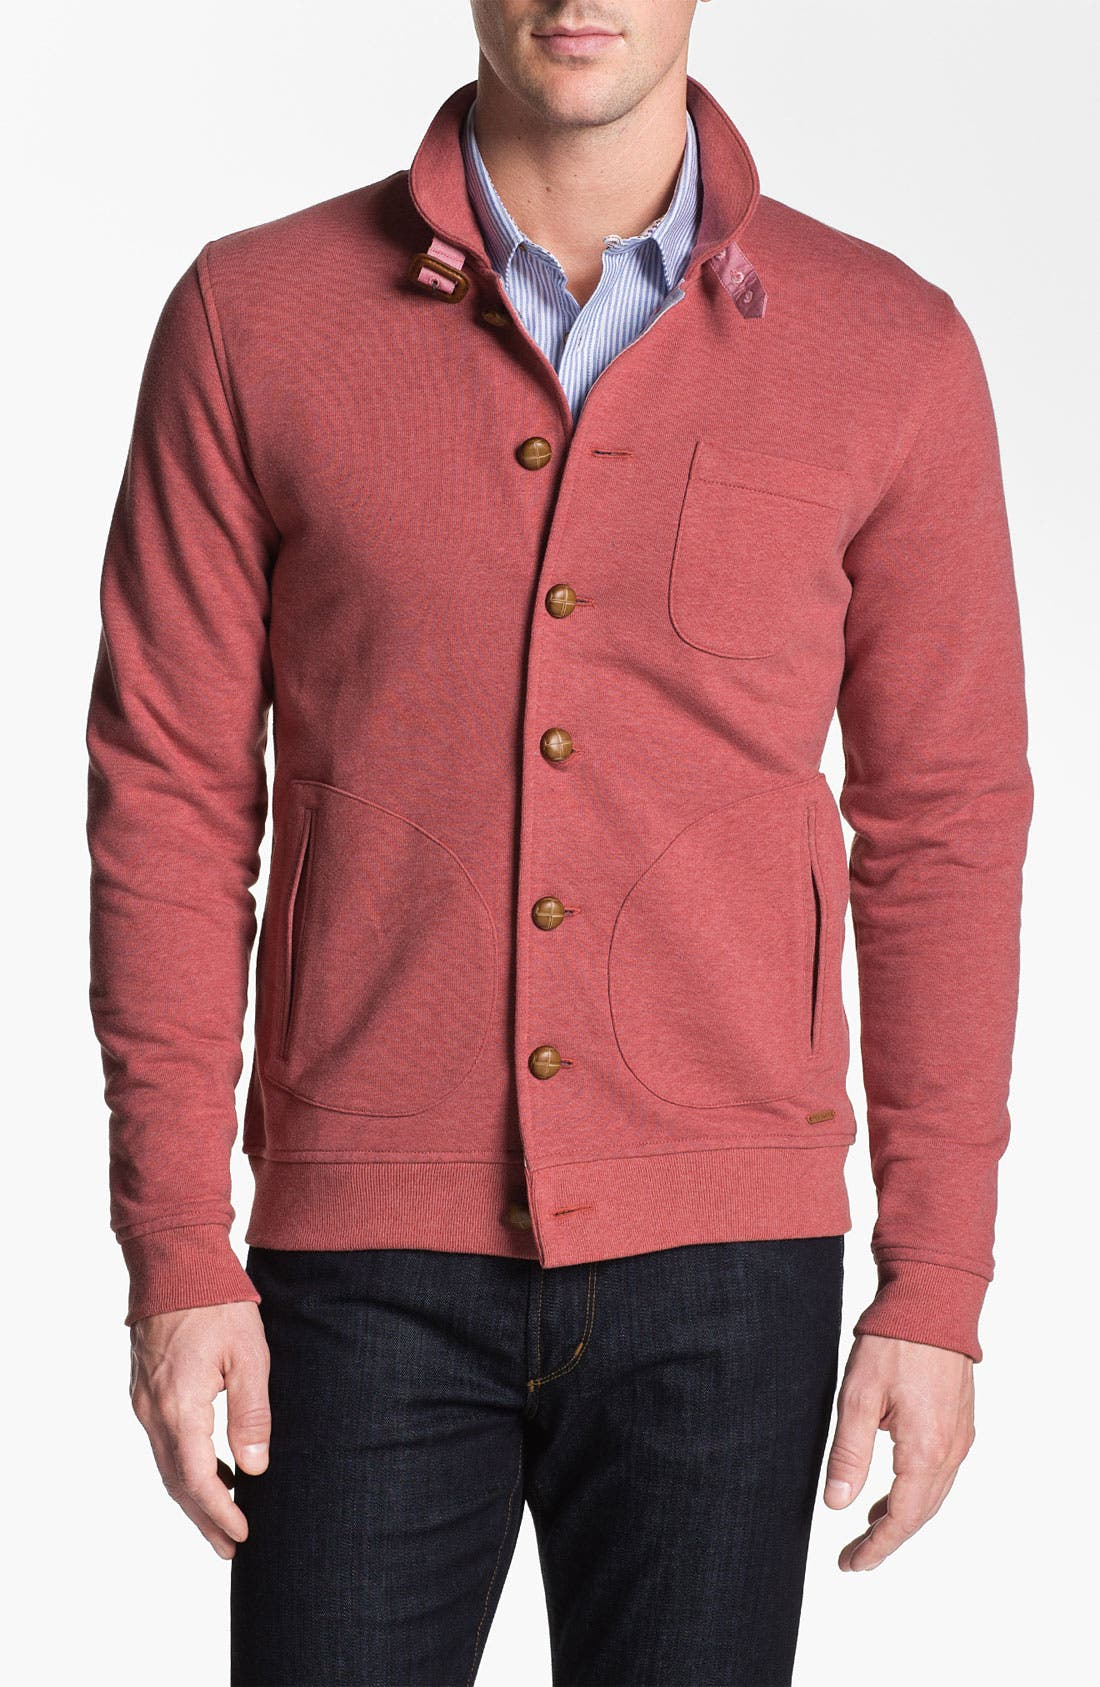 Main Image - Ted Baker London 'Folded' Button Cardigan